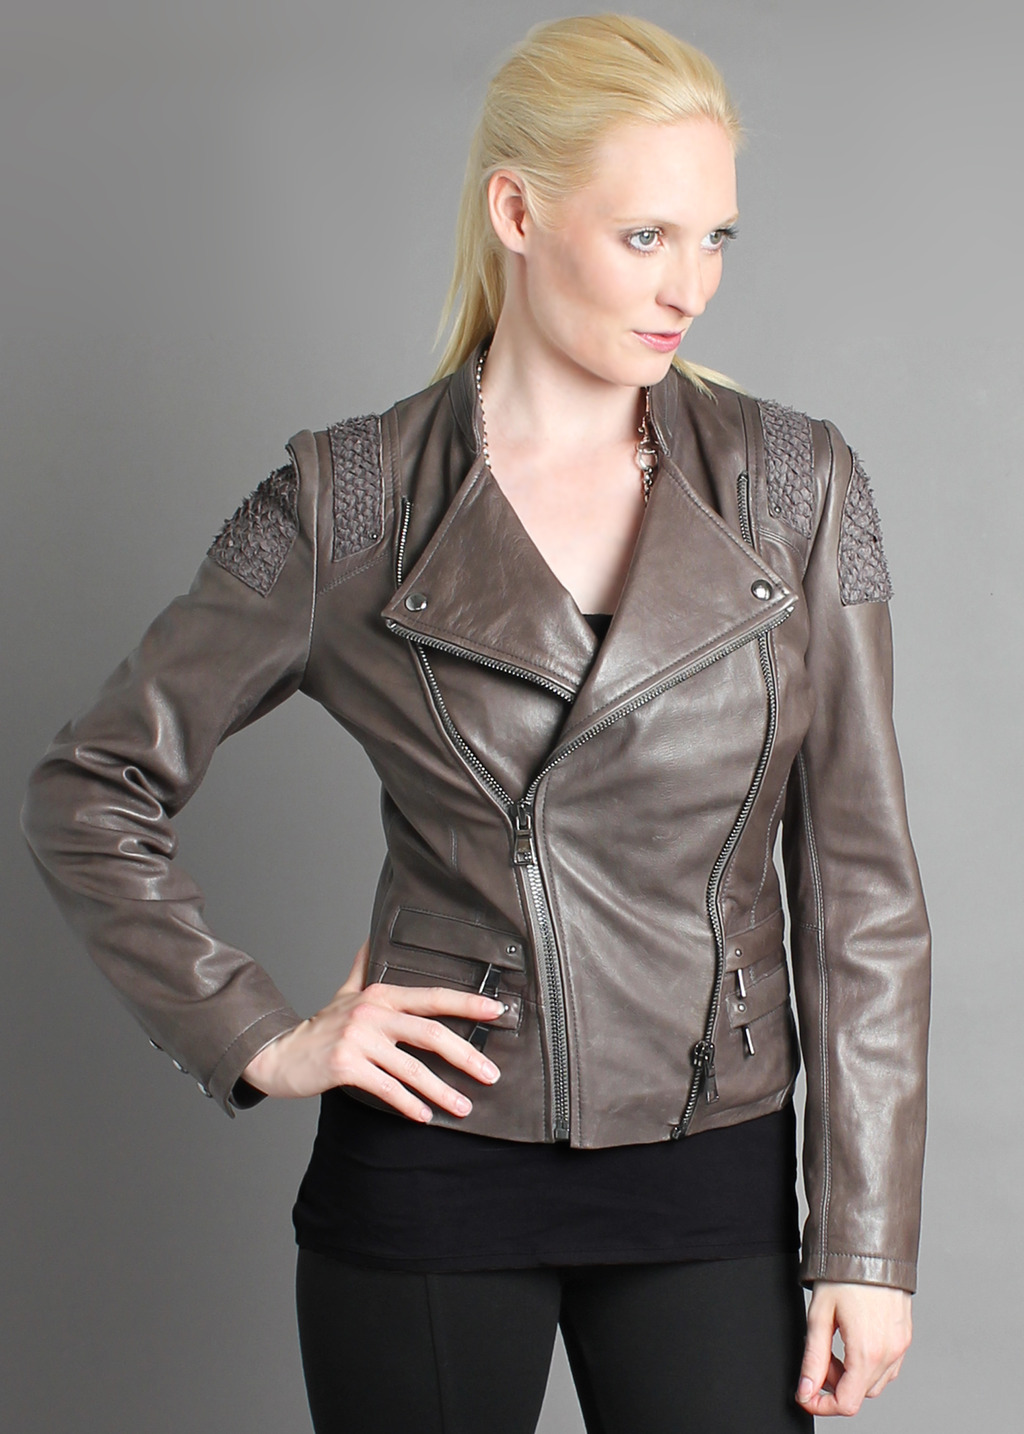 Portobello Biker Jacket - pattern: plain; style: biker; collar: asymmetric biker; shoulder detail: contrast pattern/fabric at shoulder; predominant colour: taupe; occasions: casual; length: standard; fit: tailored/fitted; fibres: leather - 100%; sleeve length: long sleeve; sleeve style: standard; texture group: leather; collar break: high/illusion of break when open; pattern type: fabric; season: a/w 2013